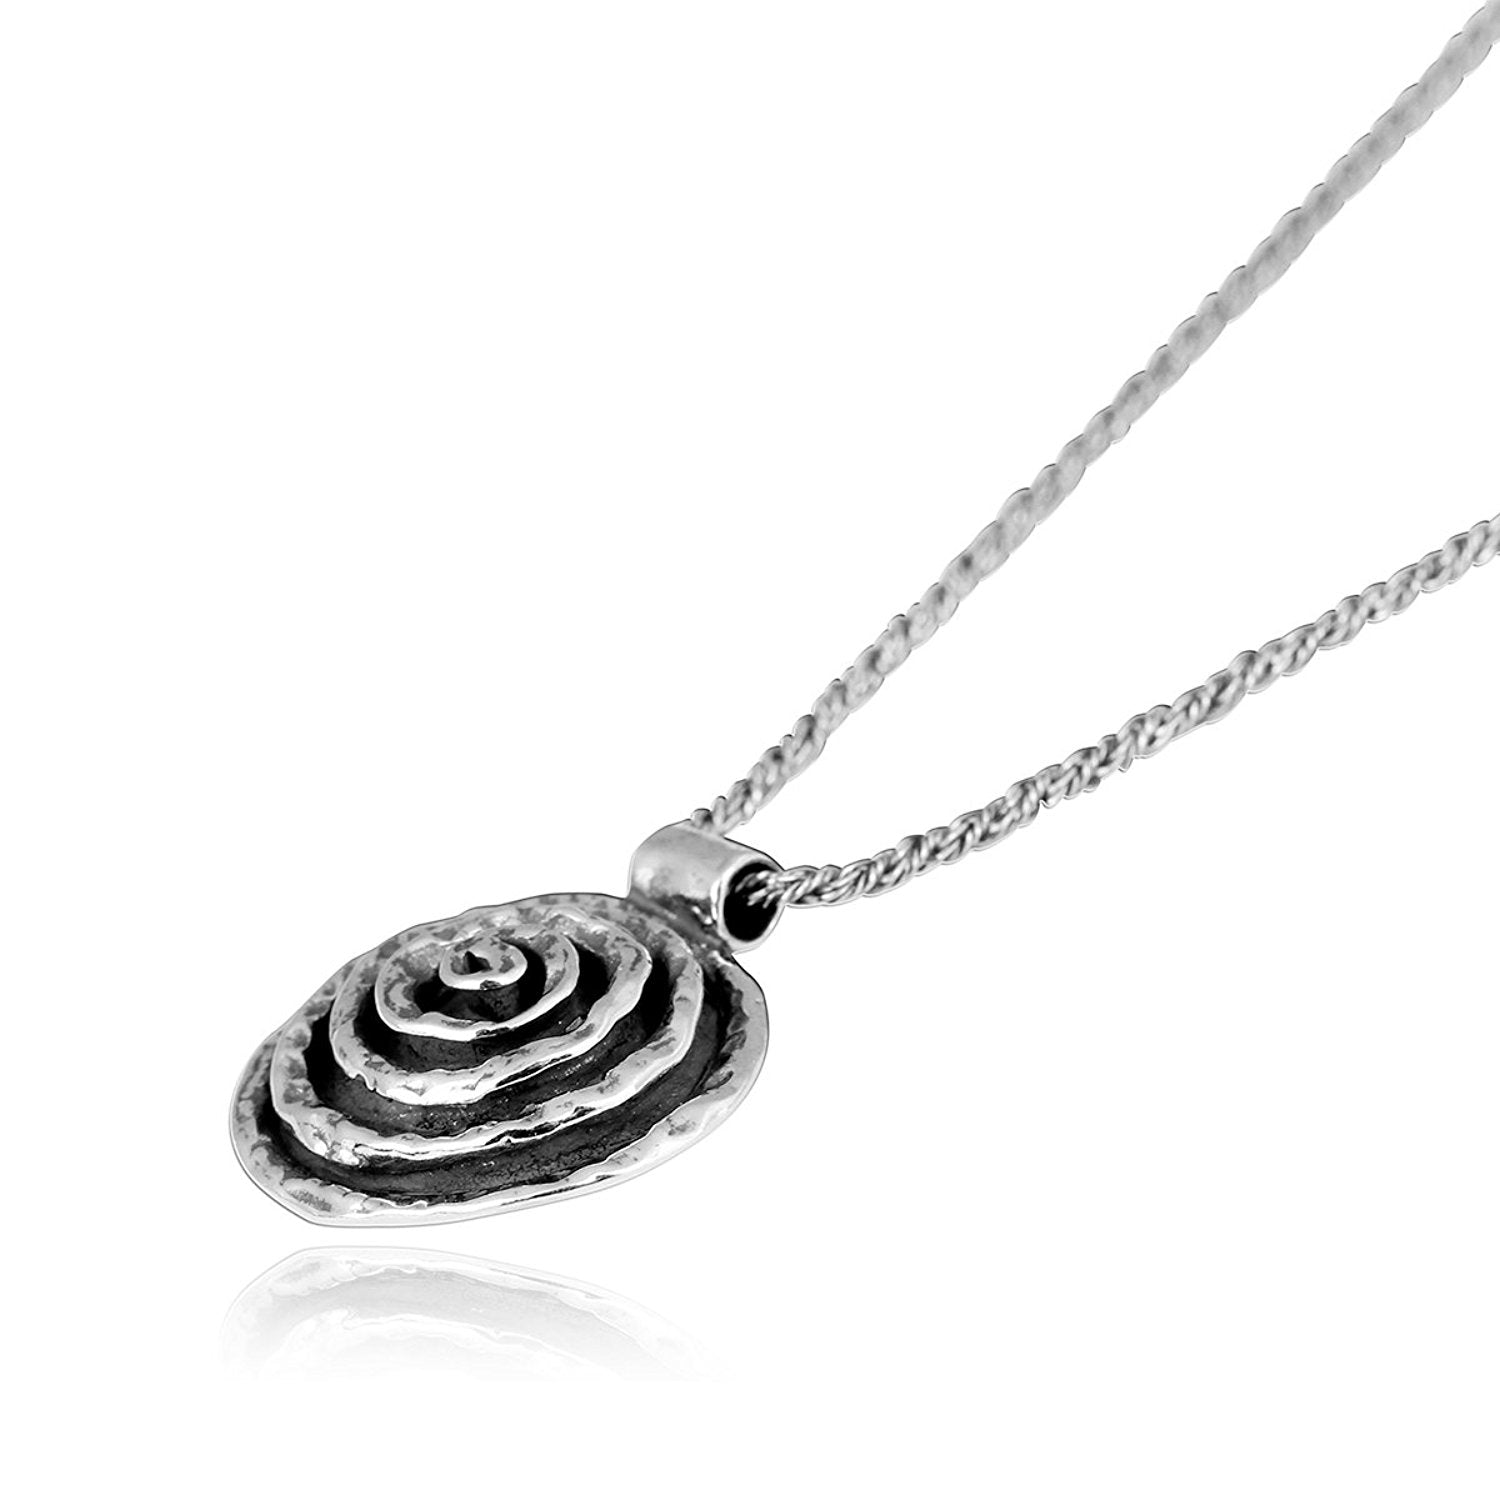 STYLISH STERLING SILVER PENDANT SPIRAL SOLID 925 NEW